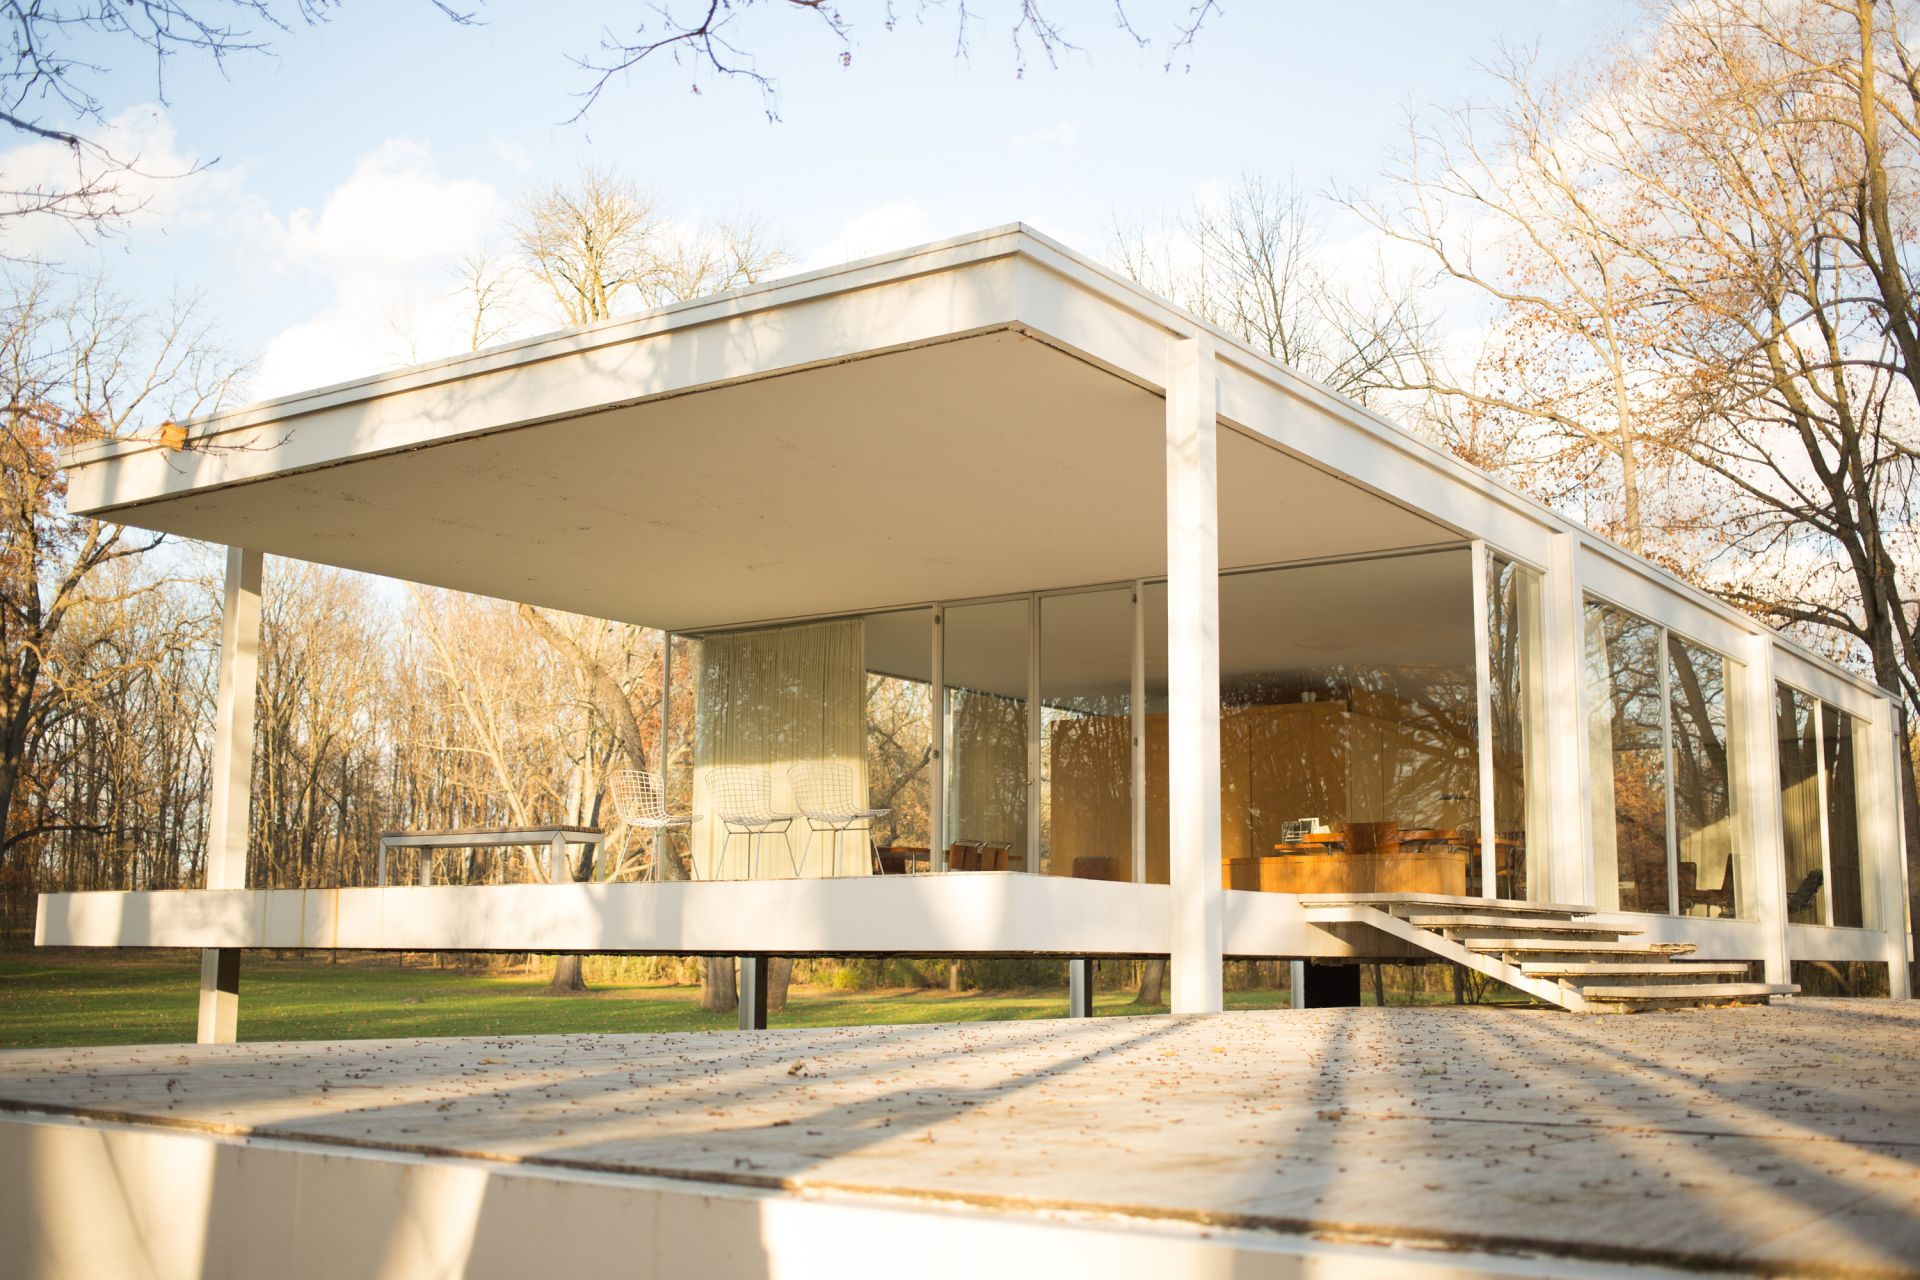 Farnsworth house by mies van der rohe exterior 8 jpg - Learn More